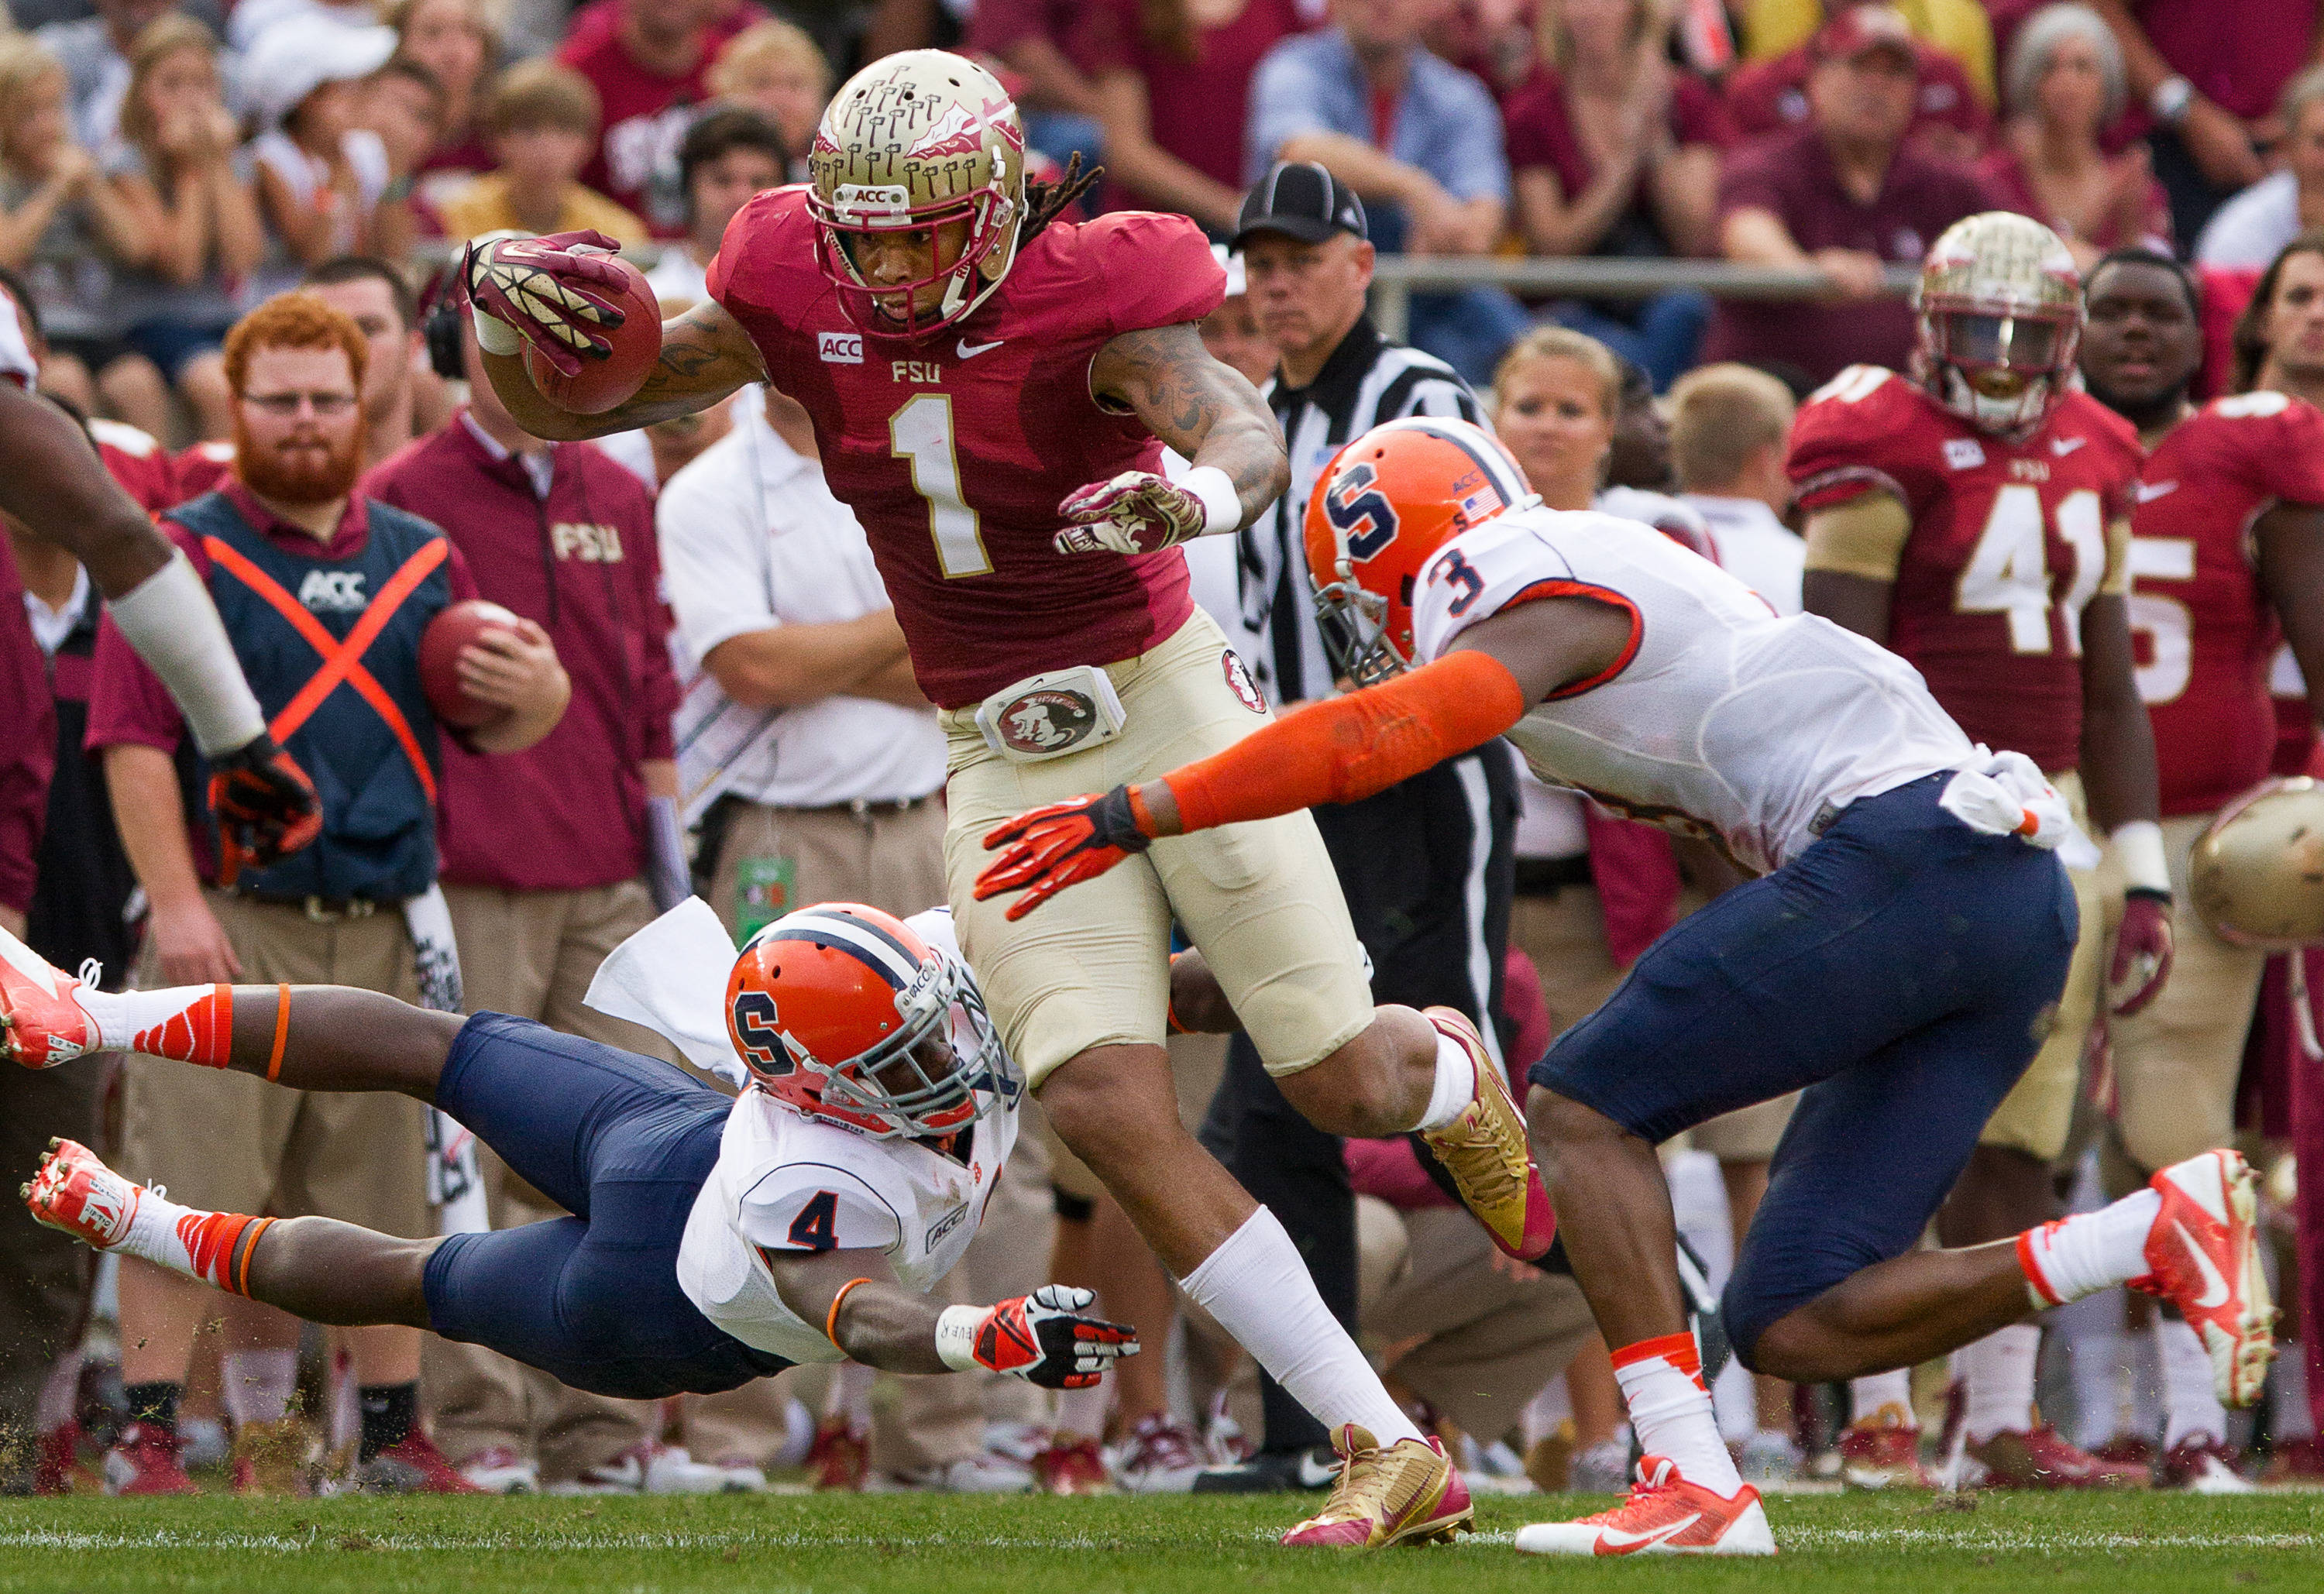 Kelvin Benjamin (1) carries the ball during FSU Football's 59-3 win over Syracuse on Saturday, November 16, 2013 in Tallahassee, Fla. Photo by Mike Schwarz.